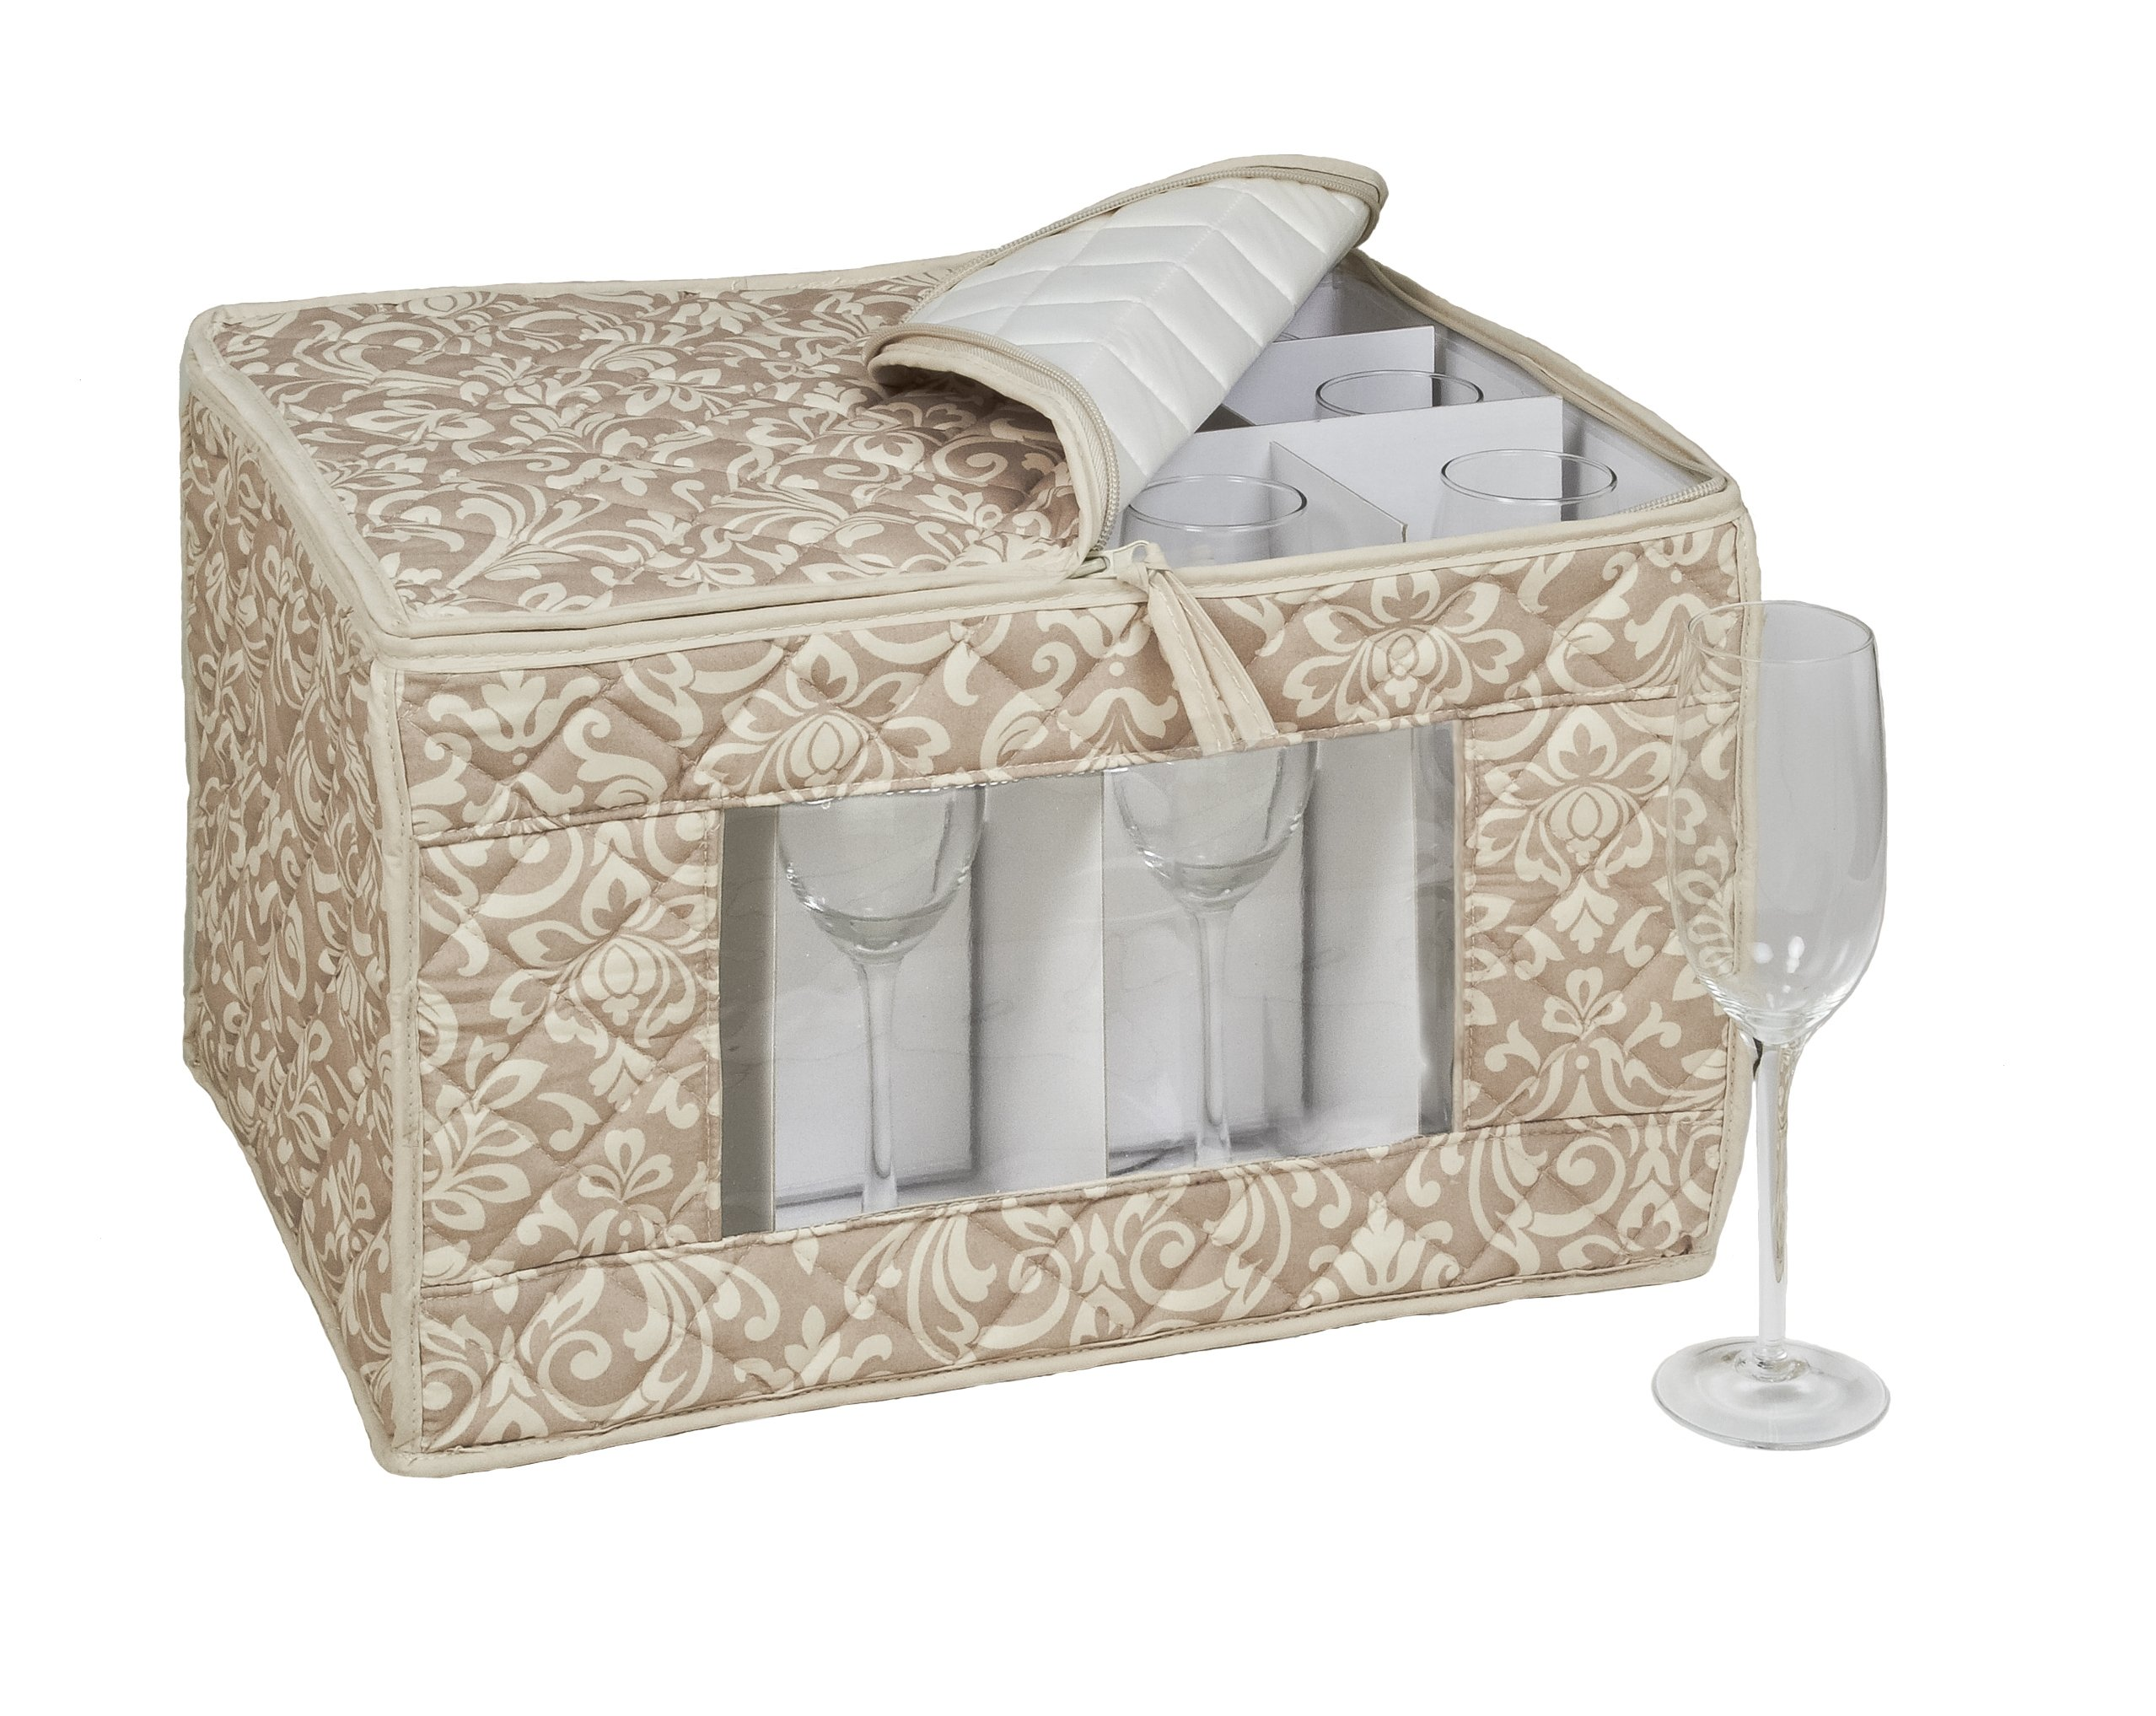 Homewear HUDSON DAMASK Tan Flute Stemware Storage for 12 Glasses, 11 by 14.5 by 9.25-Inch